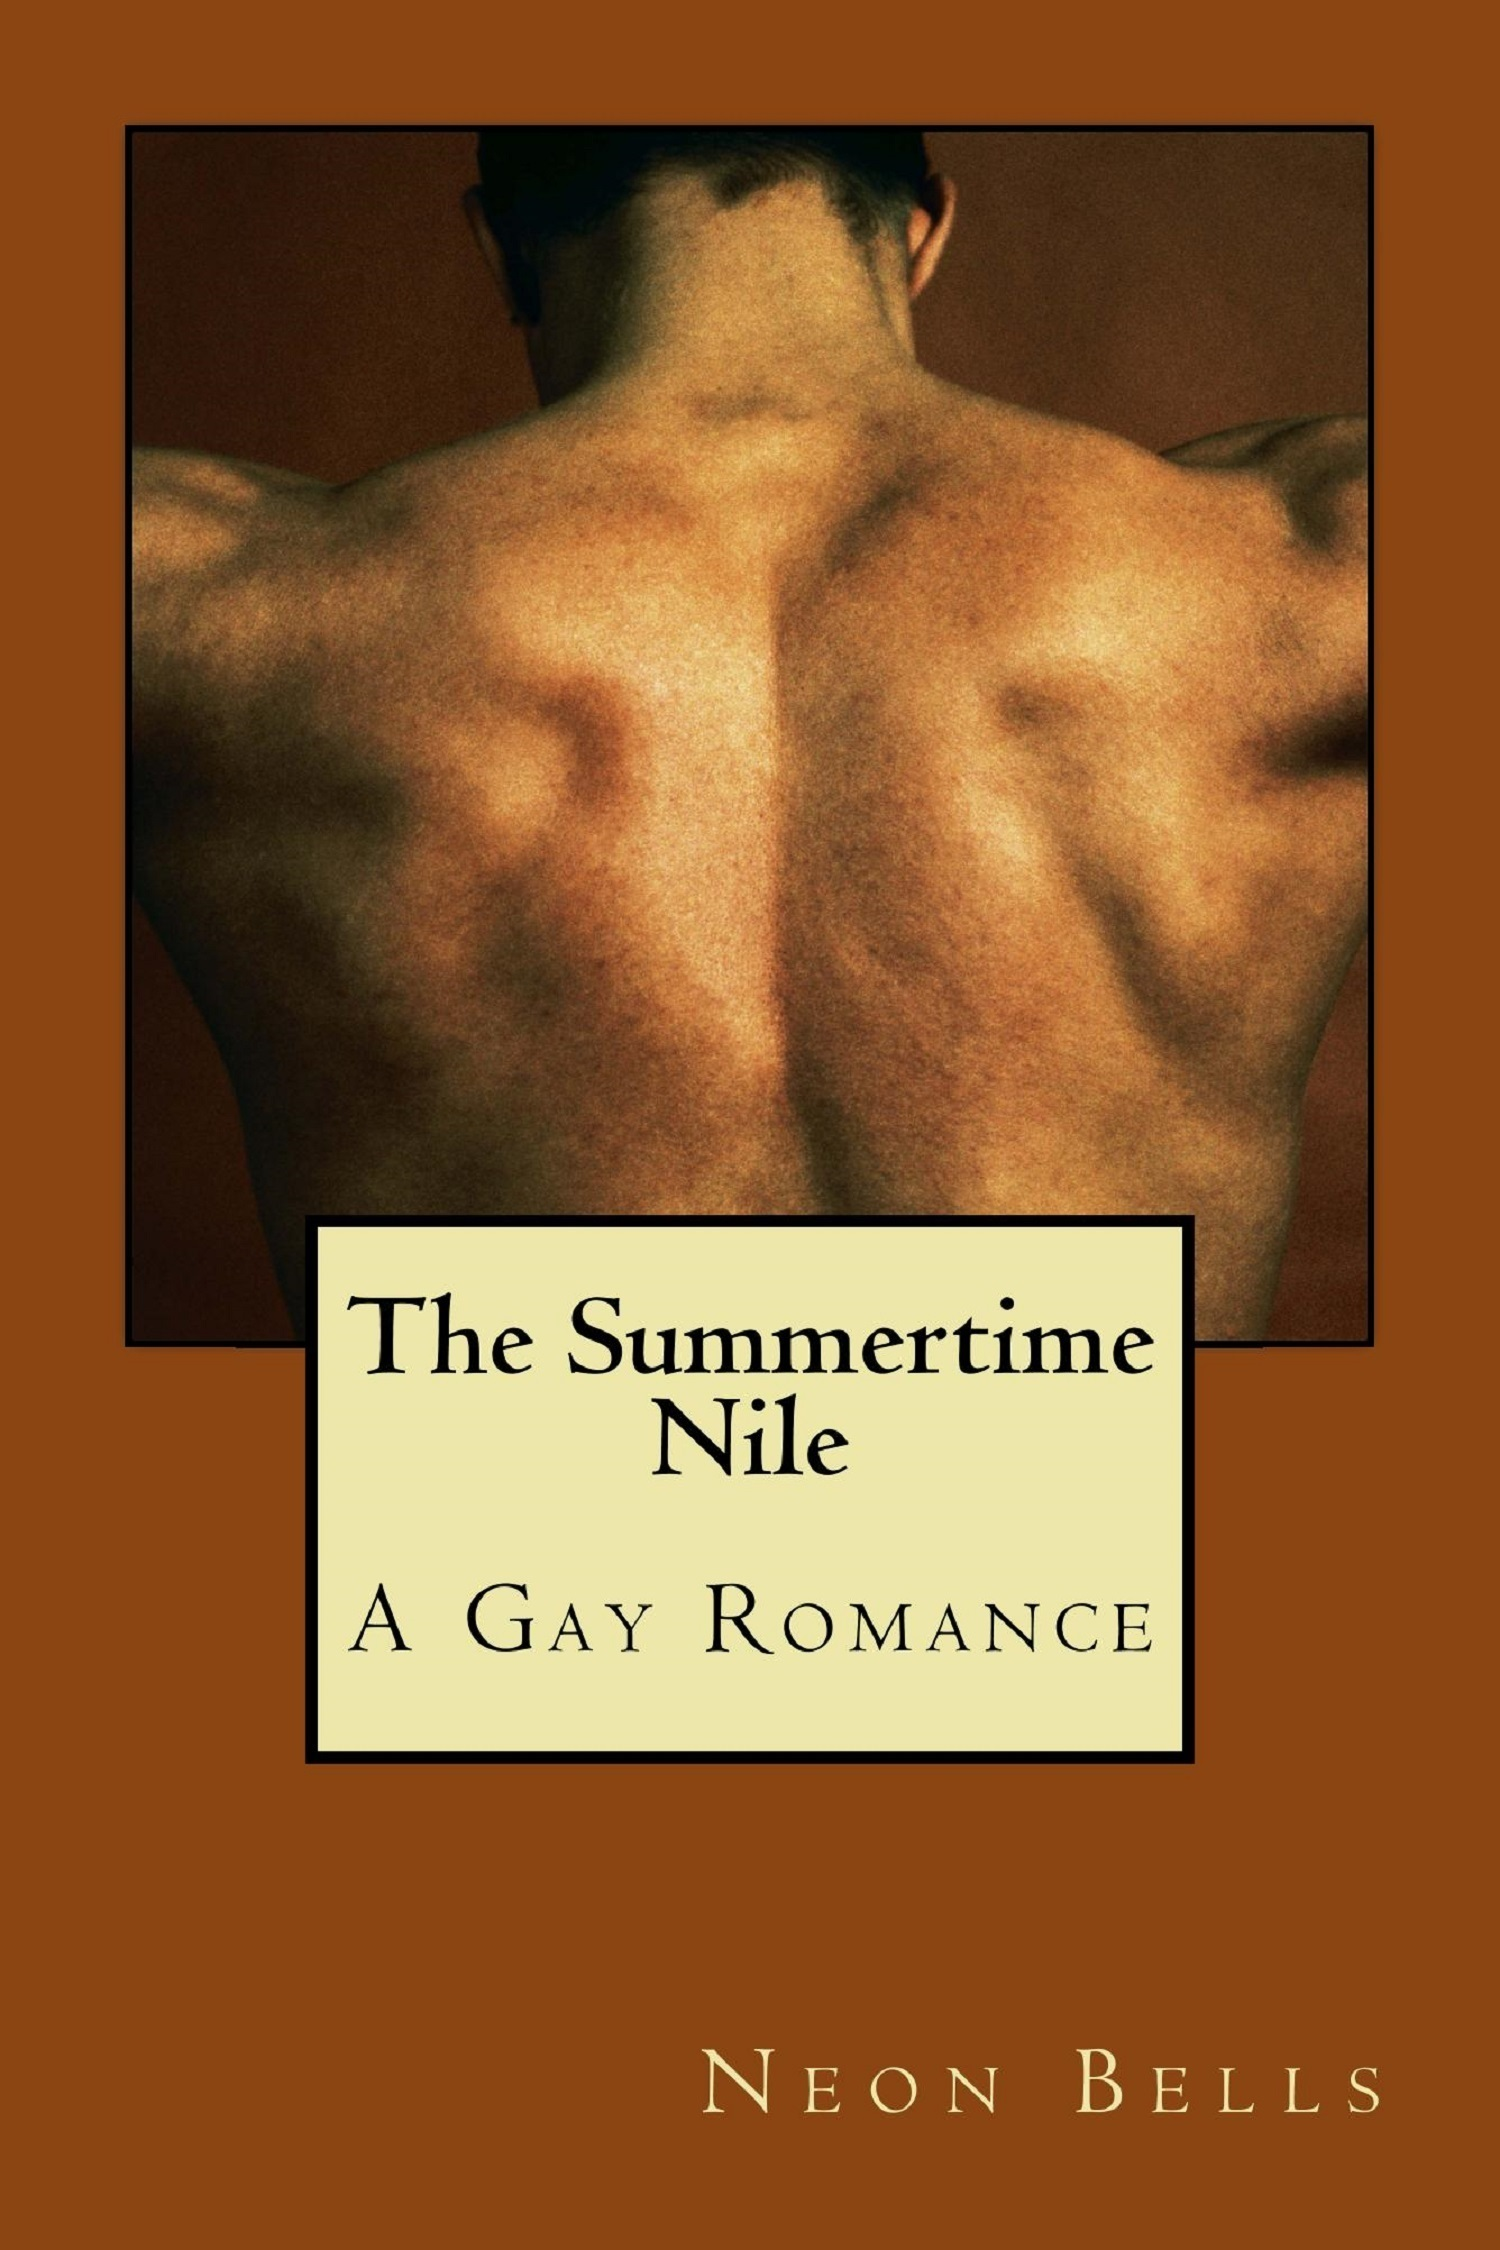 The Summertime Nile: A Gay Romance  by  Neon Bells